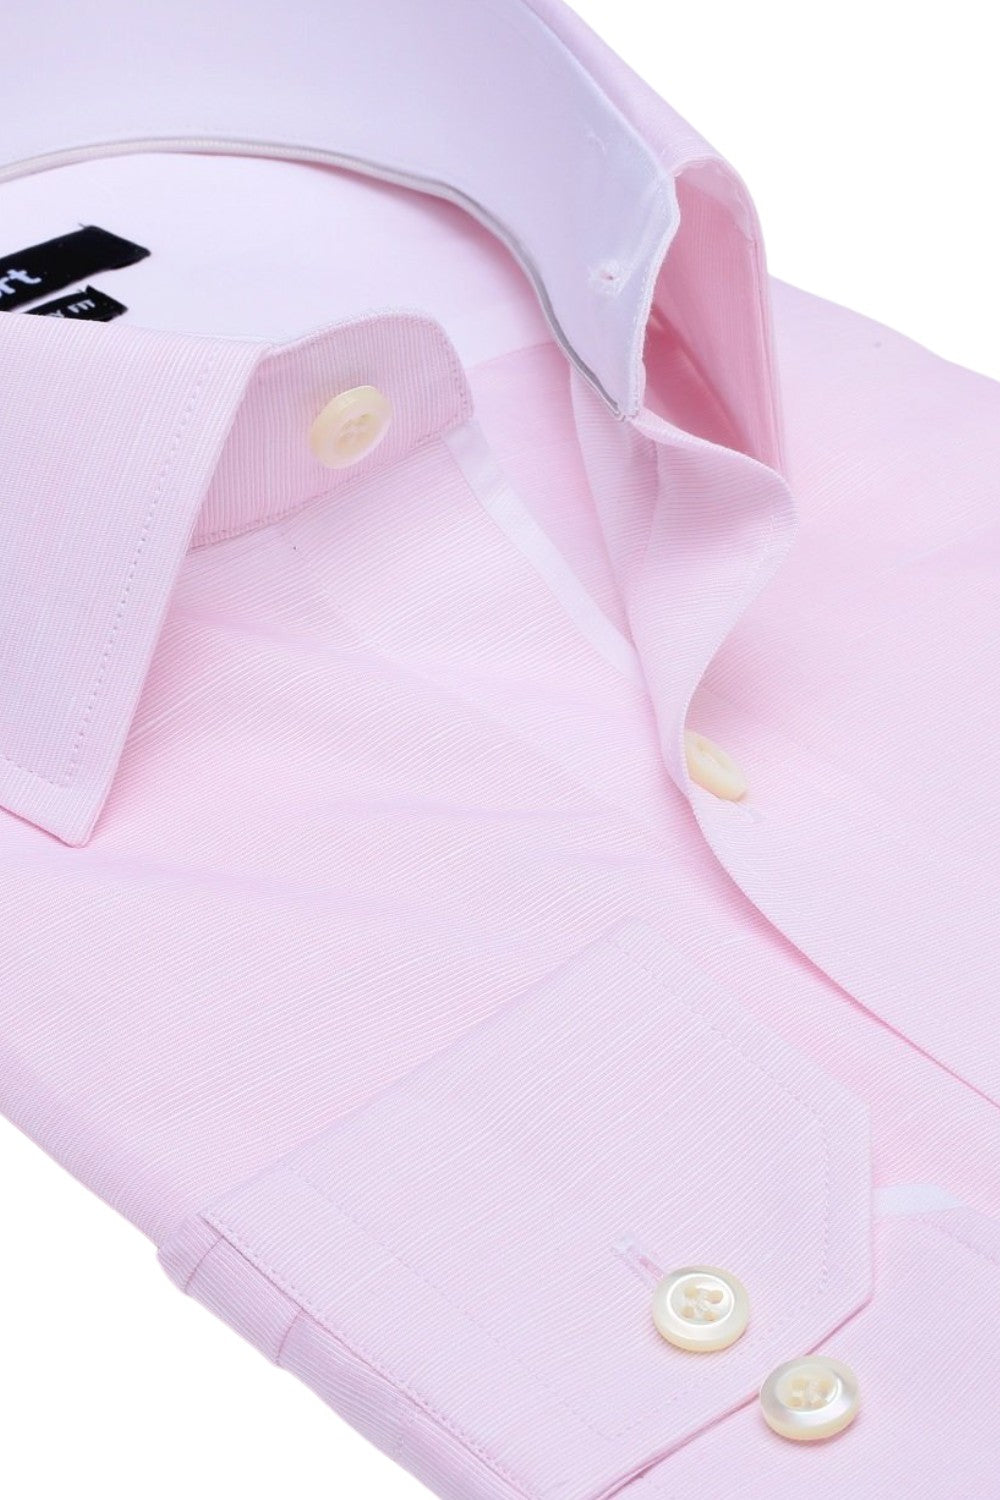 THE TUDOR LINEN SHIRT (PINK)